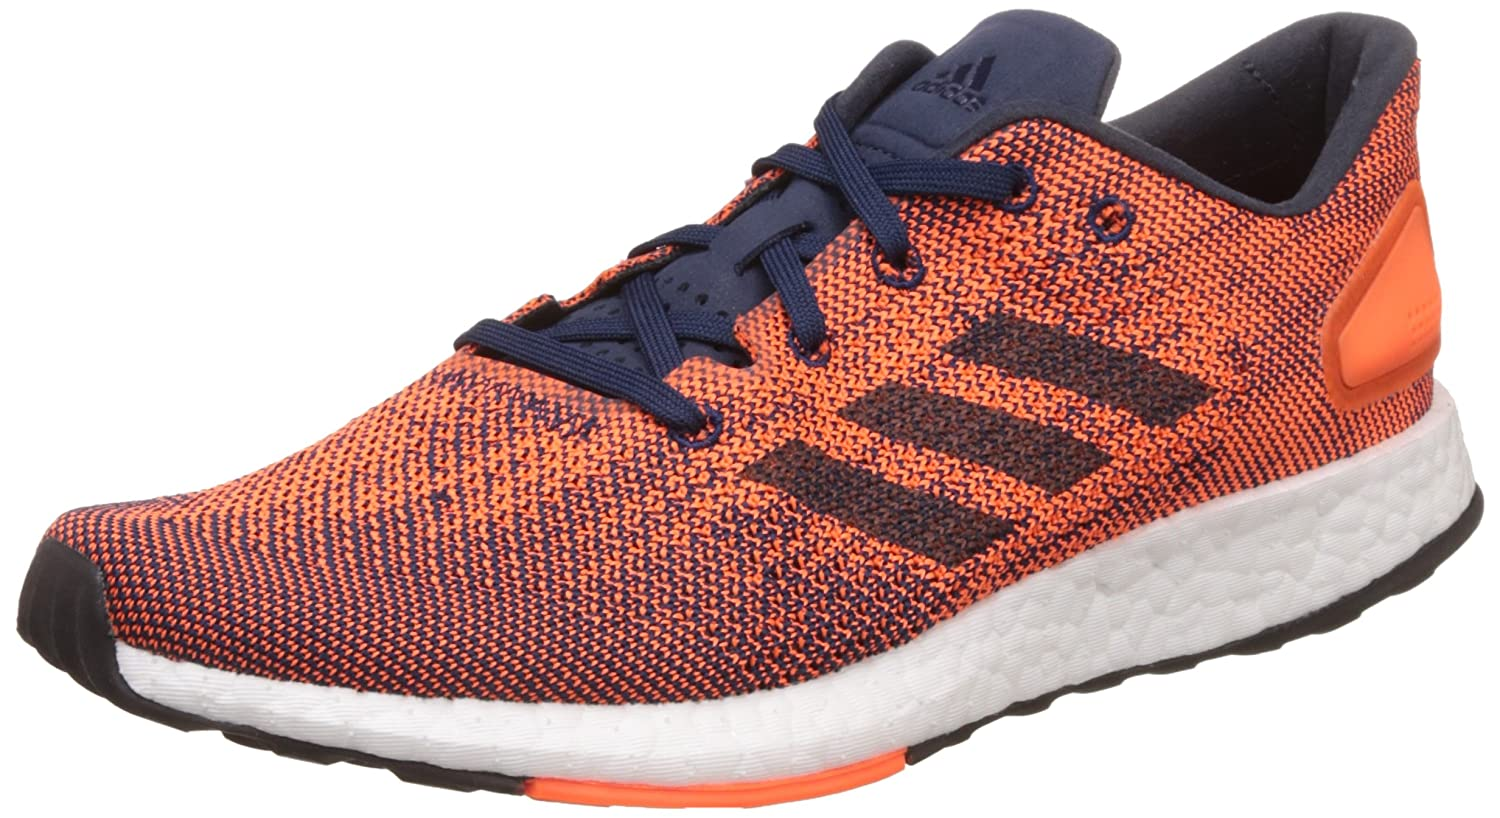 ead0c8e48 Adidas Men s Pureboost DPR Running Shoes  Buy Online at Low Prices in India  - Amazon.in